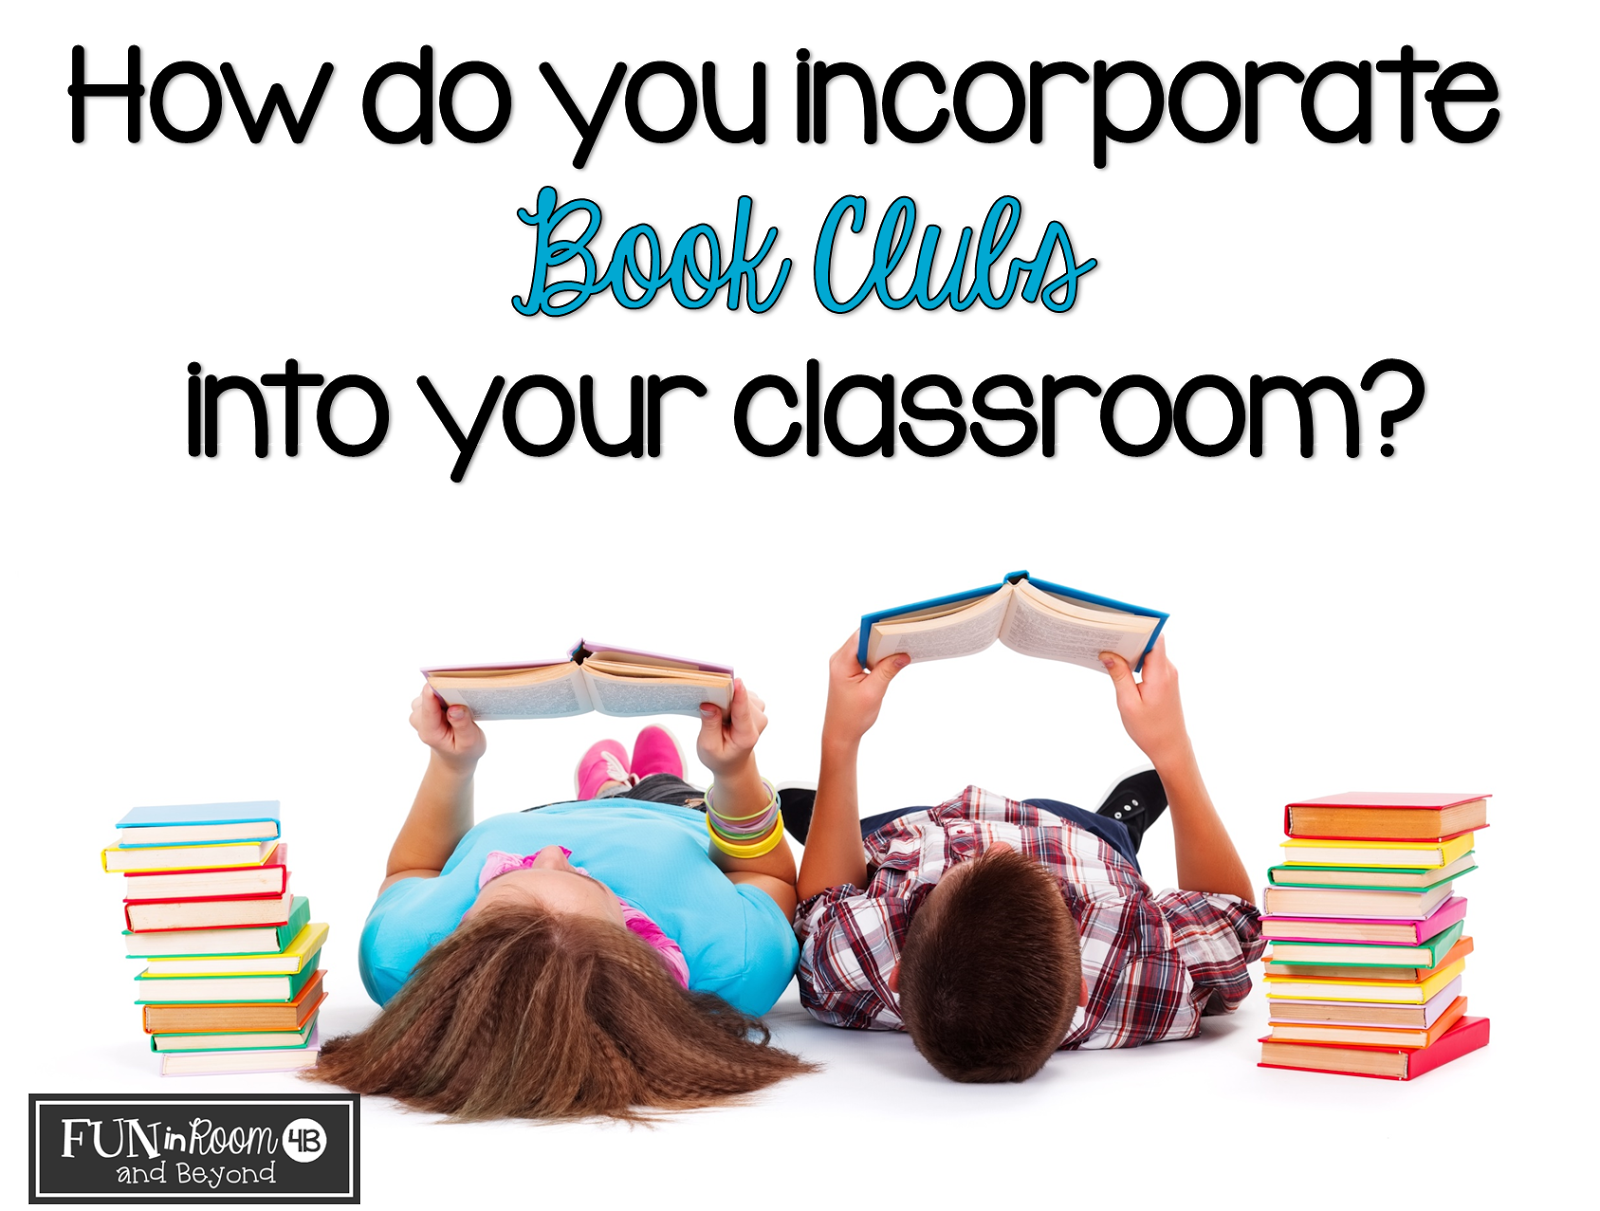 Textbook clipart gradebook. Book clubs in the